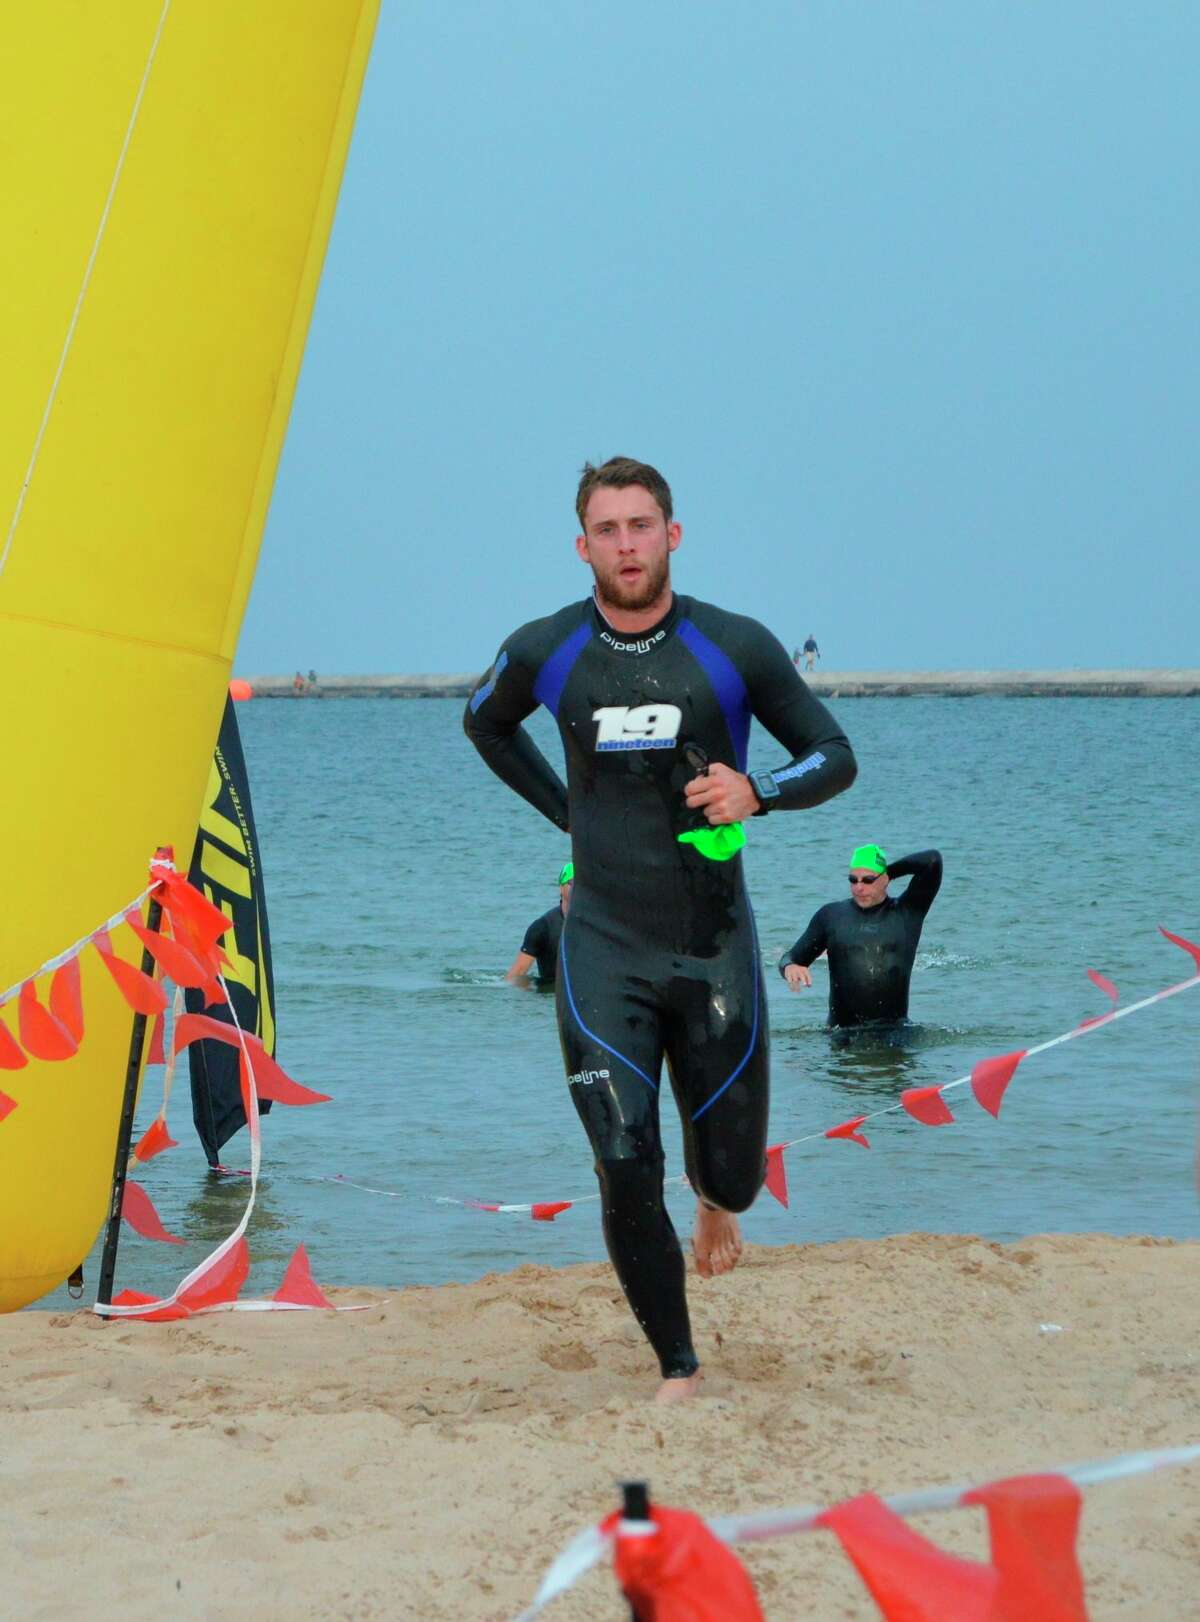 Six men inspired by Michigan native Anthony Anzell (pictured) will attempt an UltaTri endurance event to raise money to find a cure for hereditary hemorrhagic telangiectasia. (Courtesy Photo)